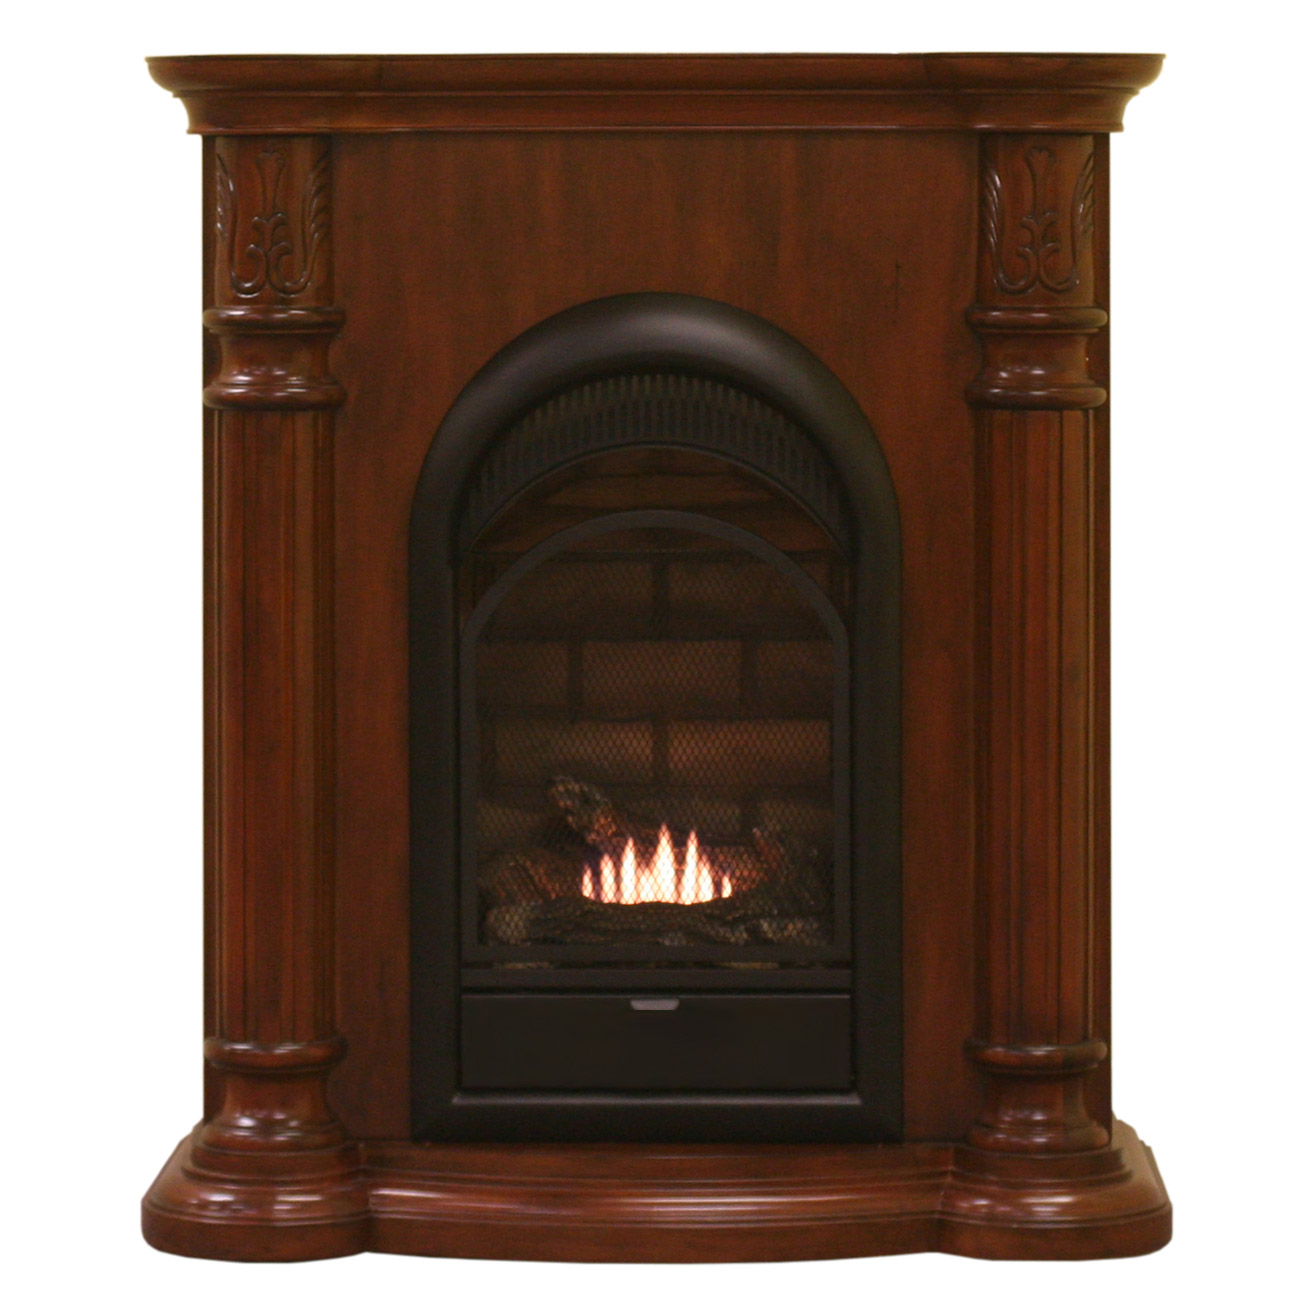 ProCom Heating Fireplace and Mantel Model AMF-CC